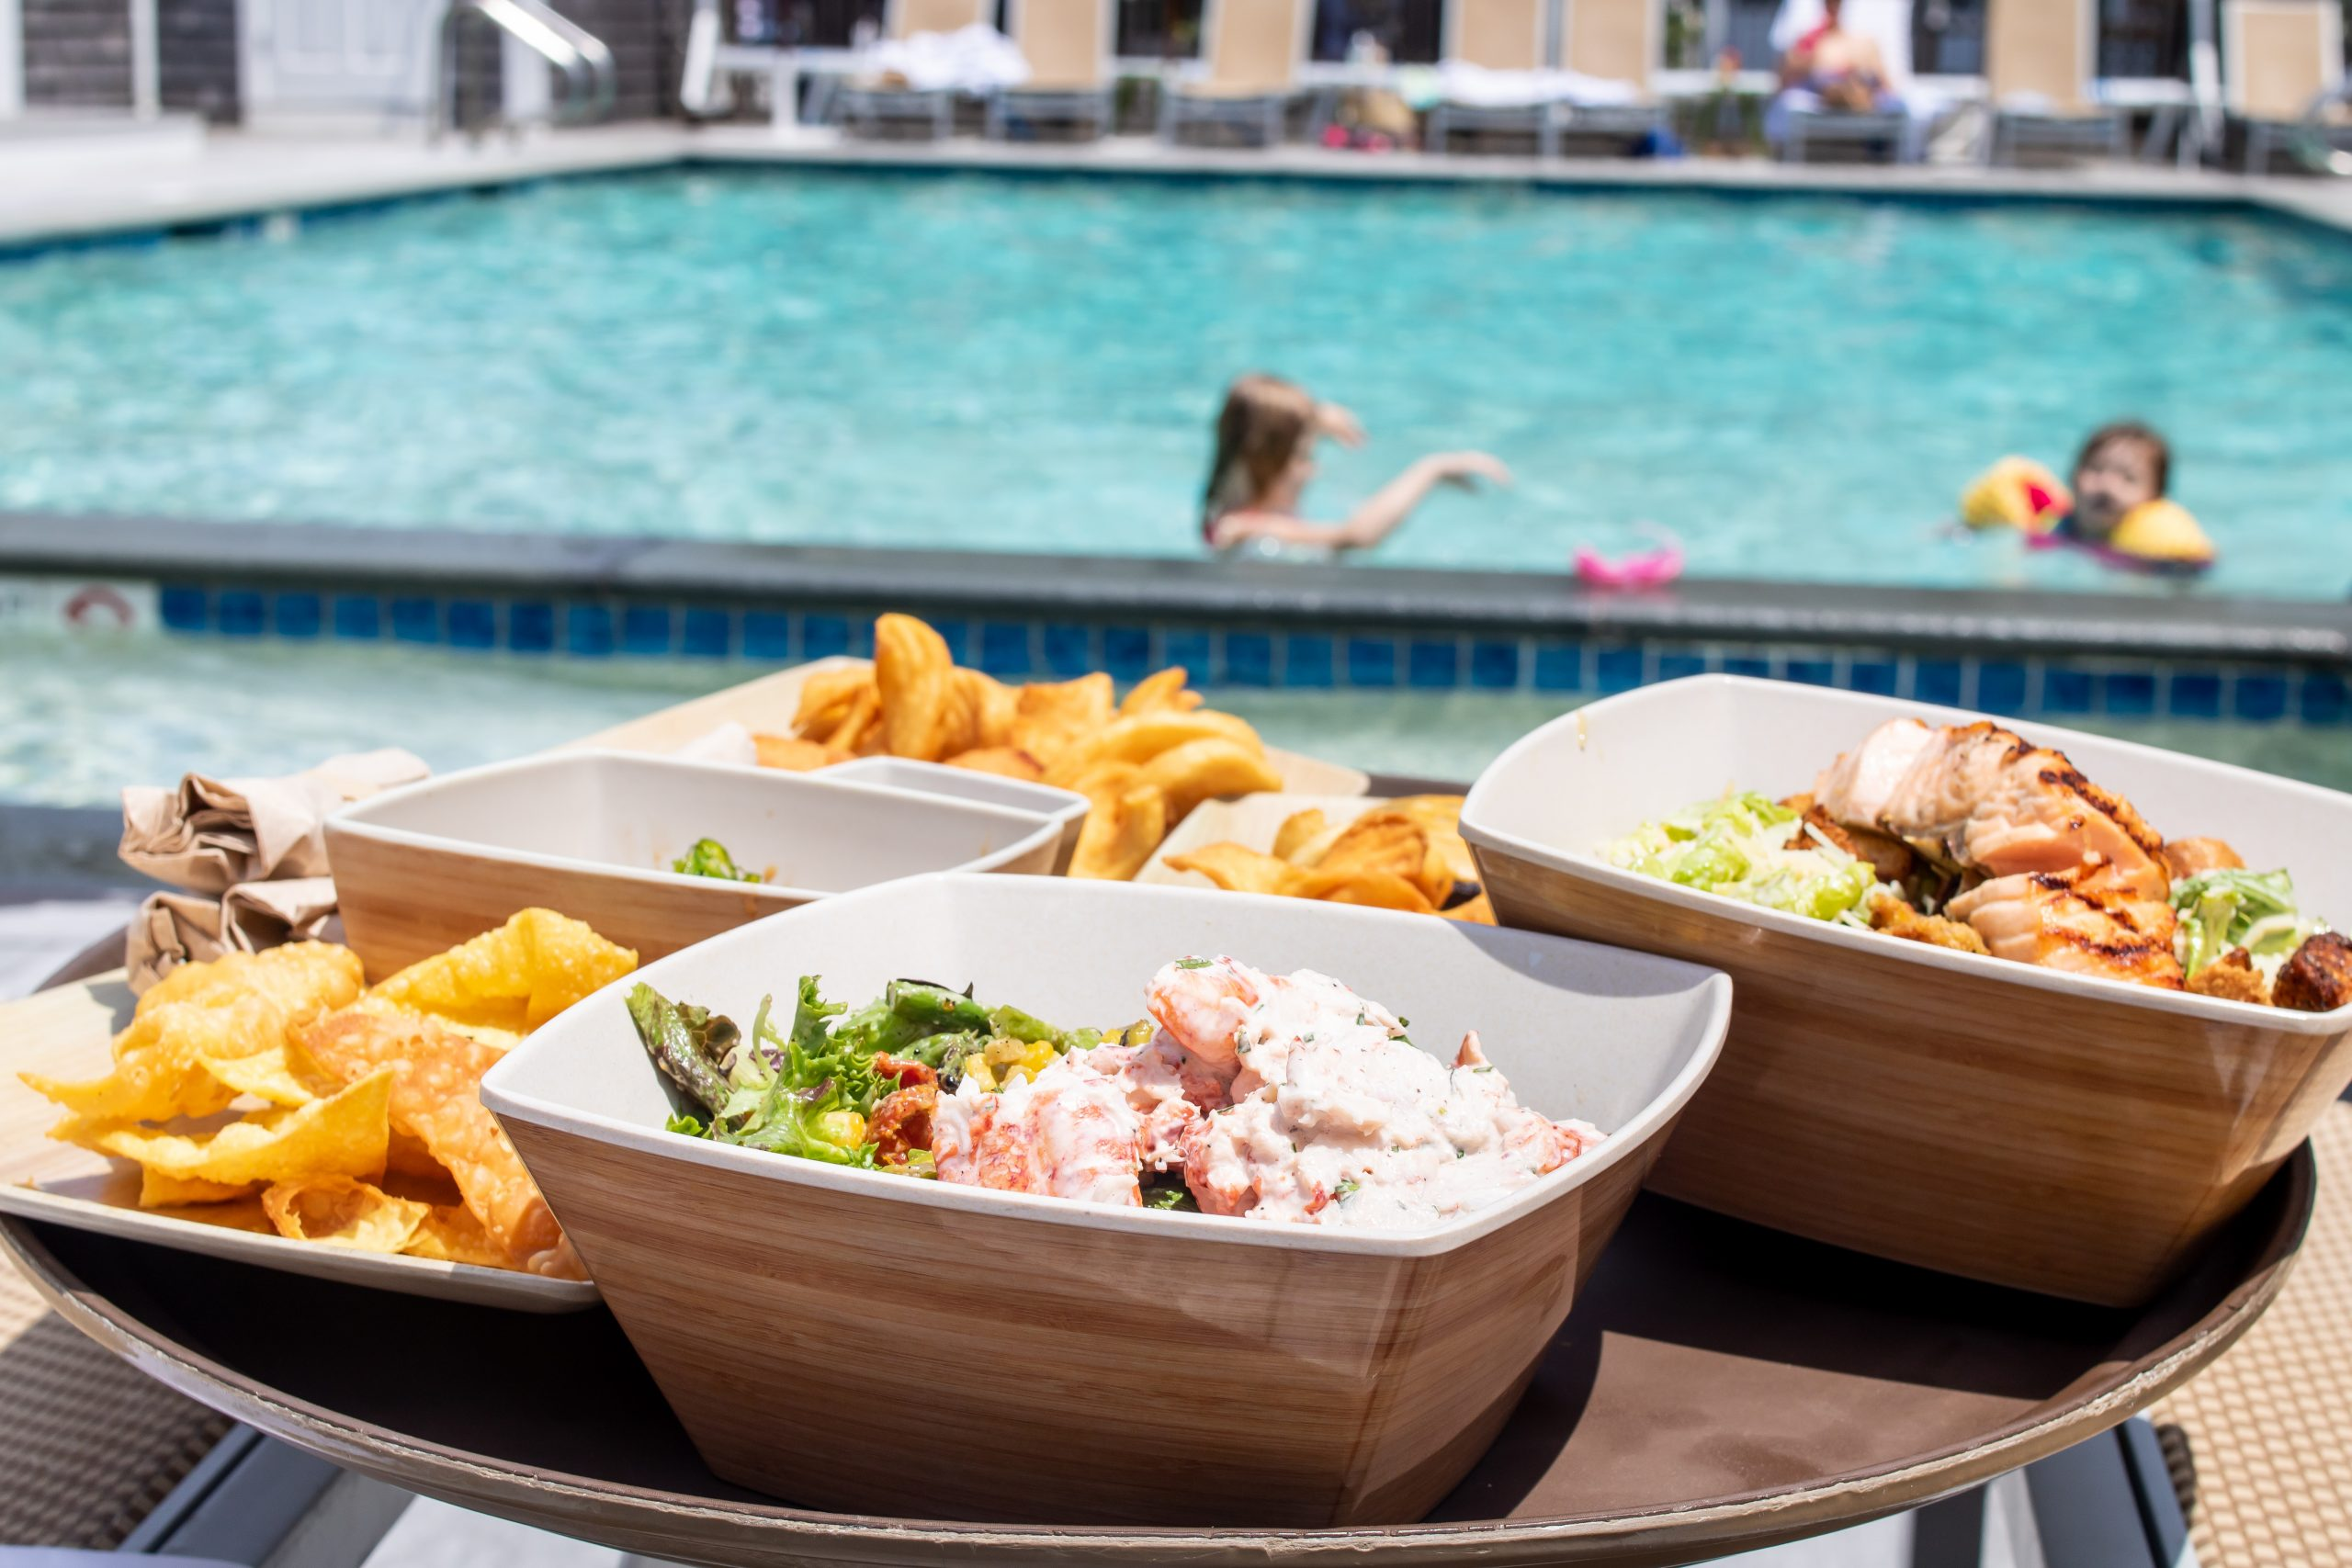 Poolside Lunch at the Nantucket Hotel from Breeze - featuring The Breeze Signature Salad topped with Lobster Salad and curly sea salt fries